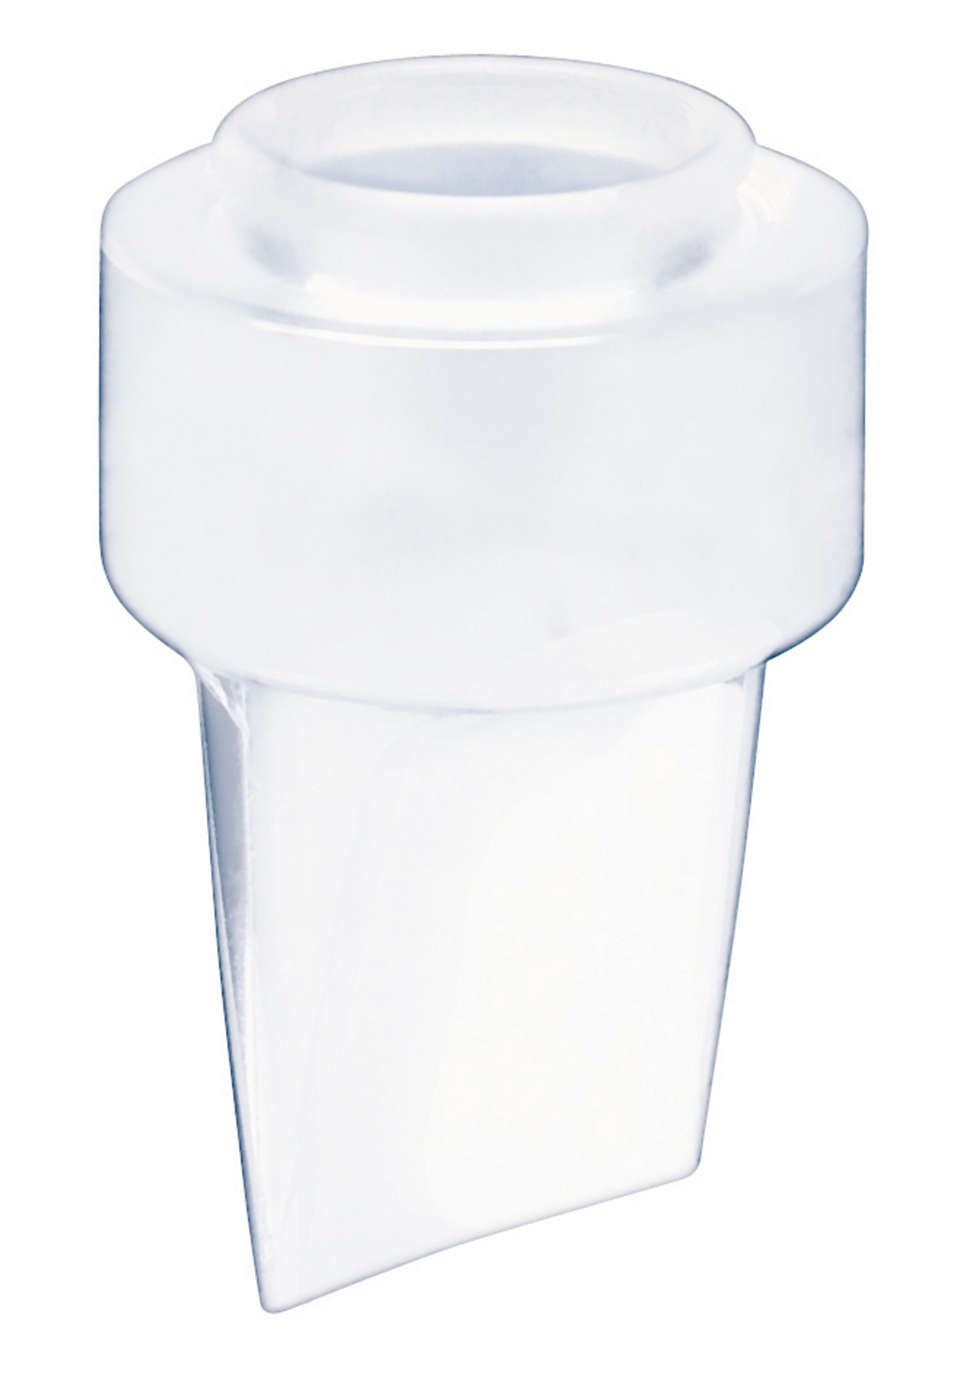 Allows milk to flow into the bottle